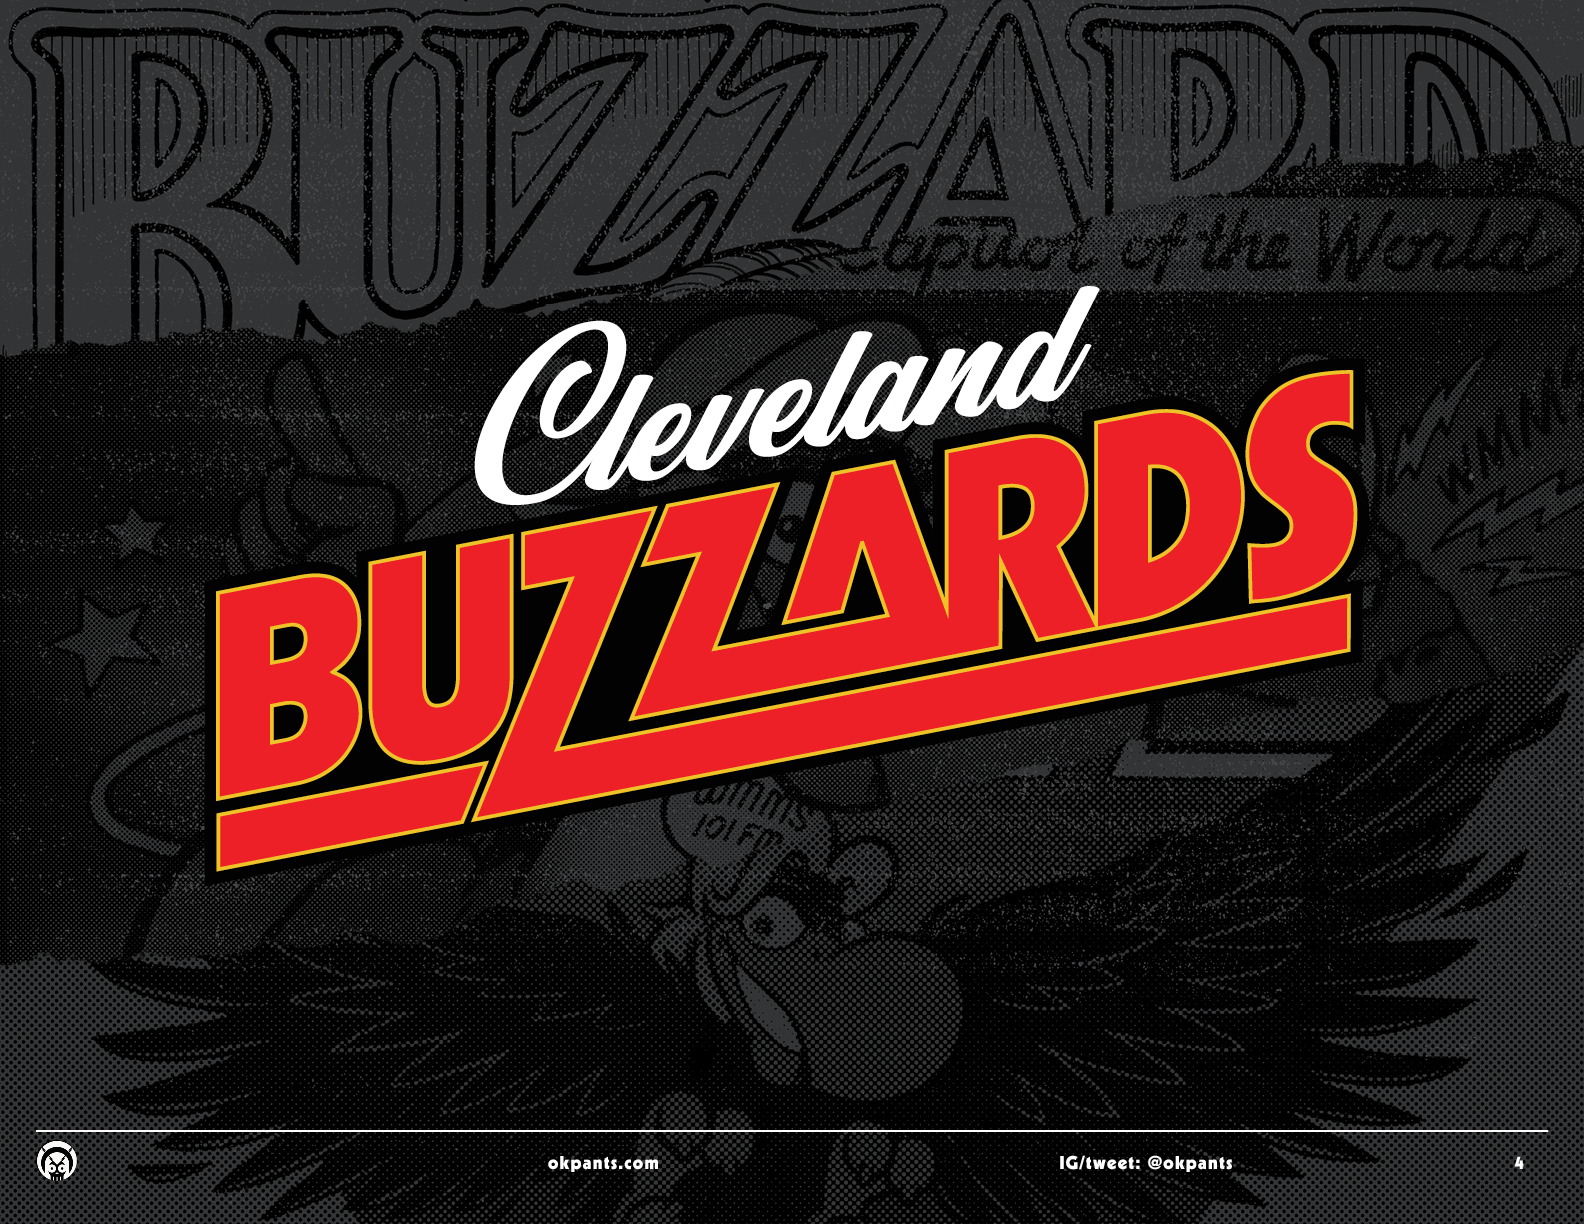 Cleveland Buzzards4.jpg